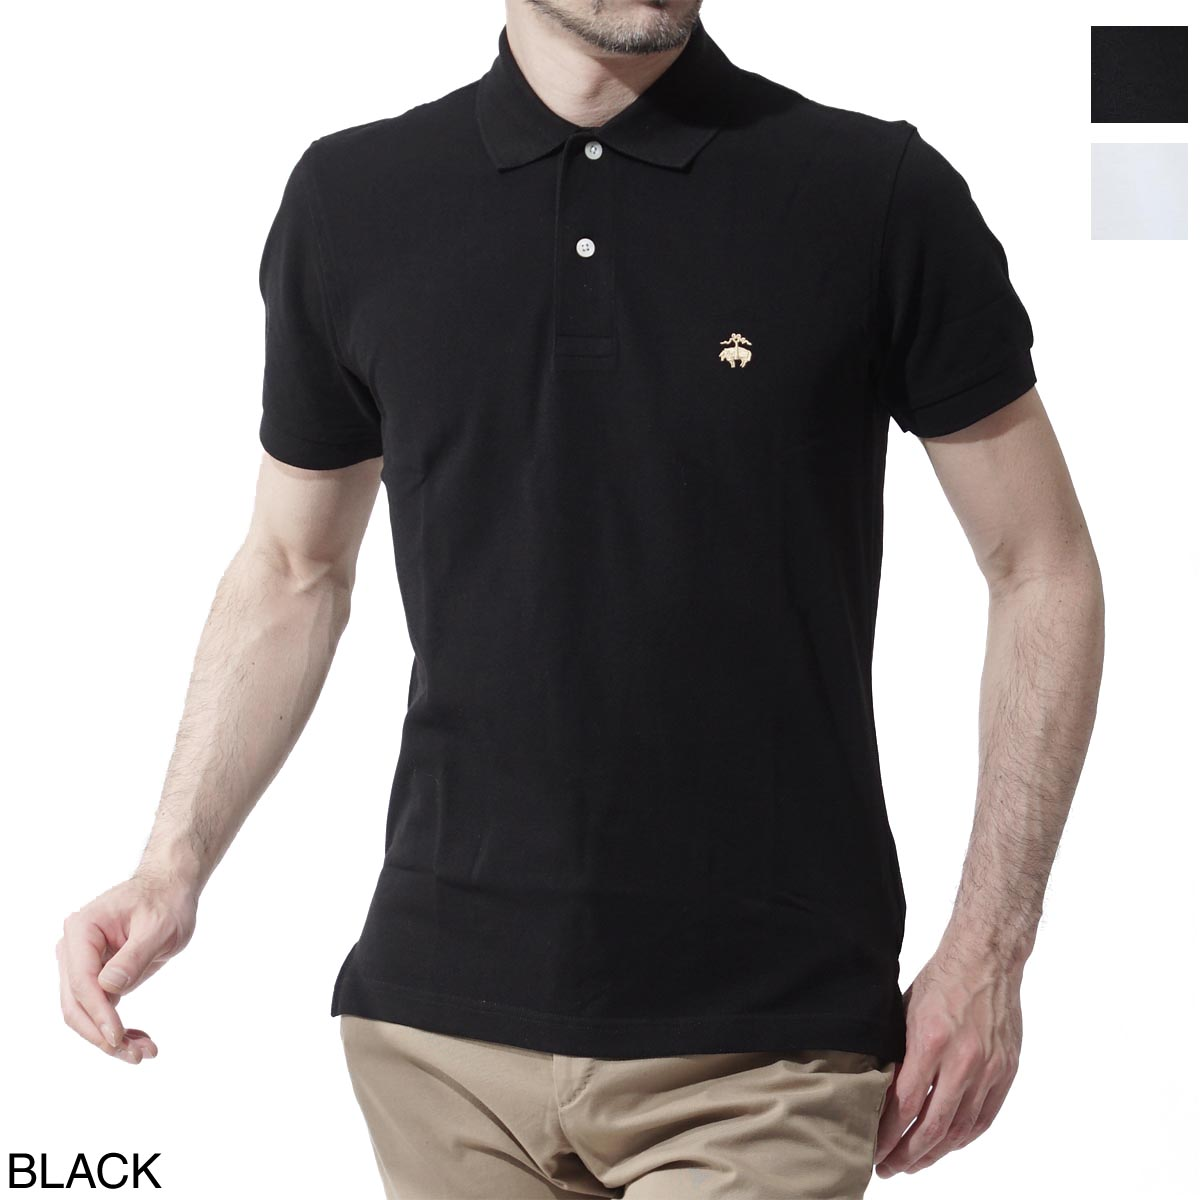 PERFORMANCE POLO SLIM FIT